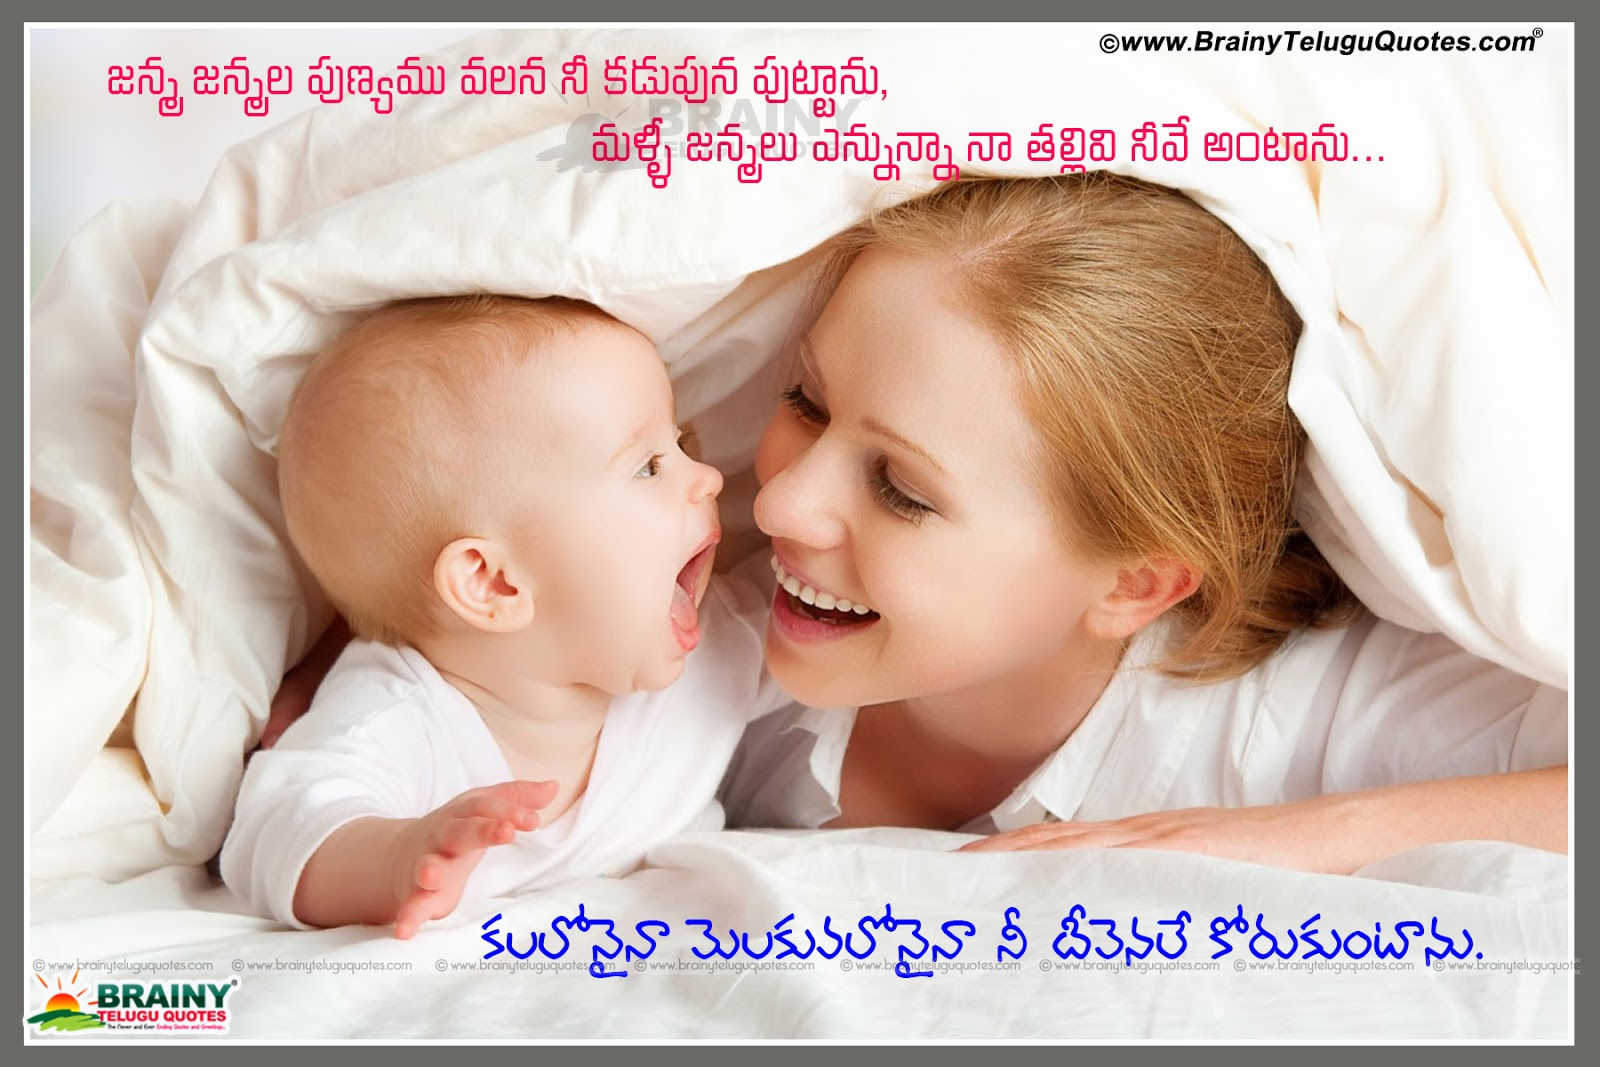 Mother And Son Quotes In Hindi: I Love You Messages Quotes For Mom With Mother And Child